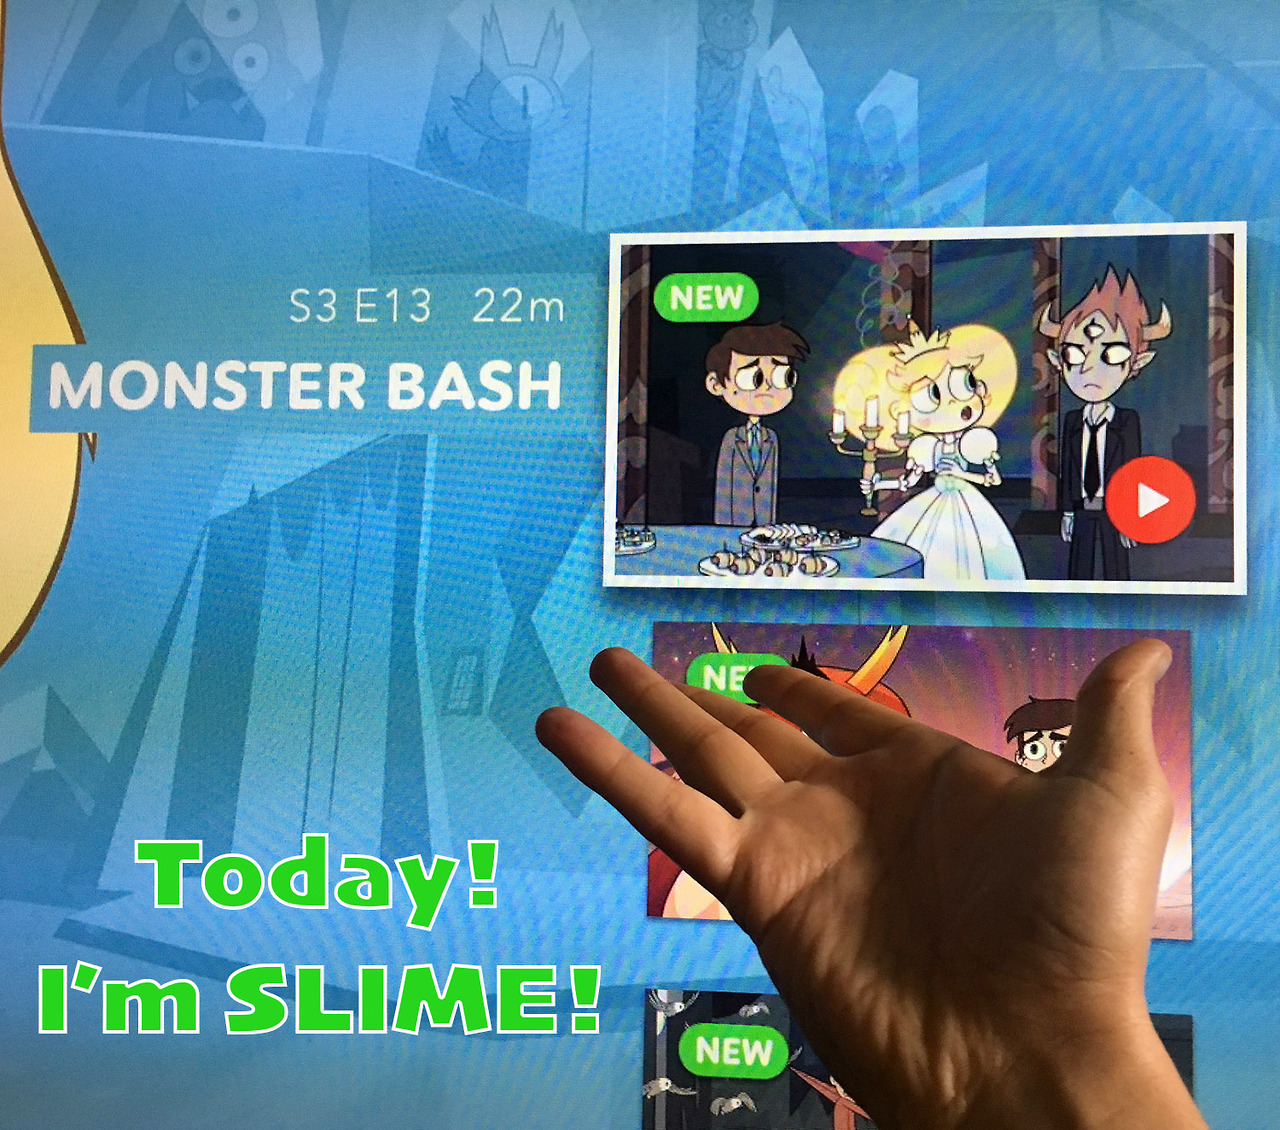 "Today I'm a voice on Star Vs. The Forces of Evil! It's episode 13 of Season 3 entitled: ""Monster Bash""  I play a character named Slime! You can watch it on the Disney XD channel tonight at 8:30pm or on the Disney Now app RIGHT NOW or purchase it on iTunes in a few days!"